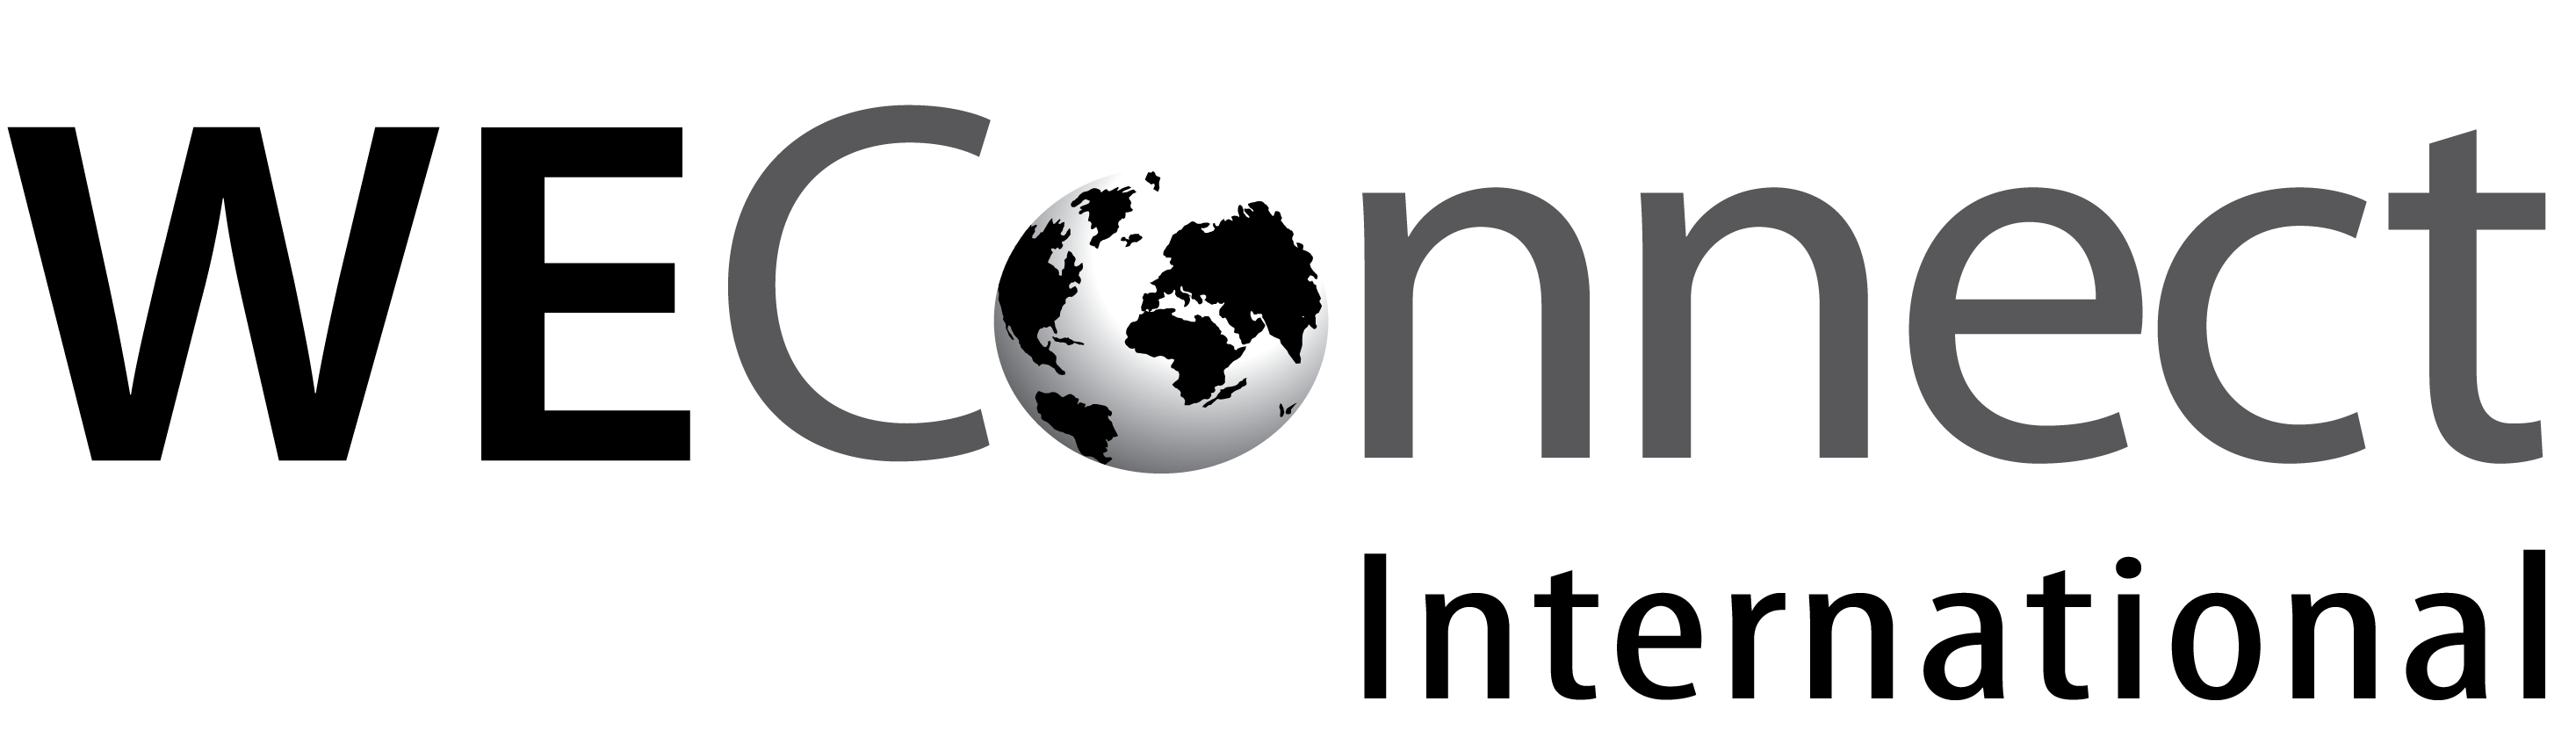 WEConnect International large logo